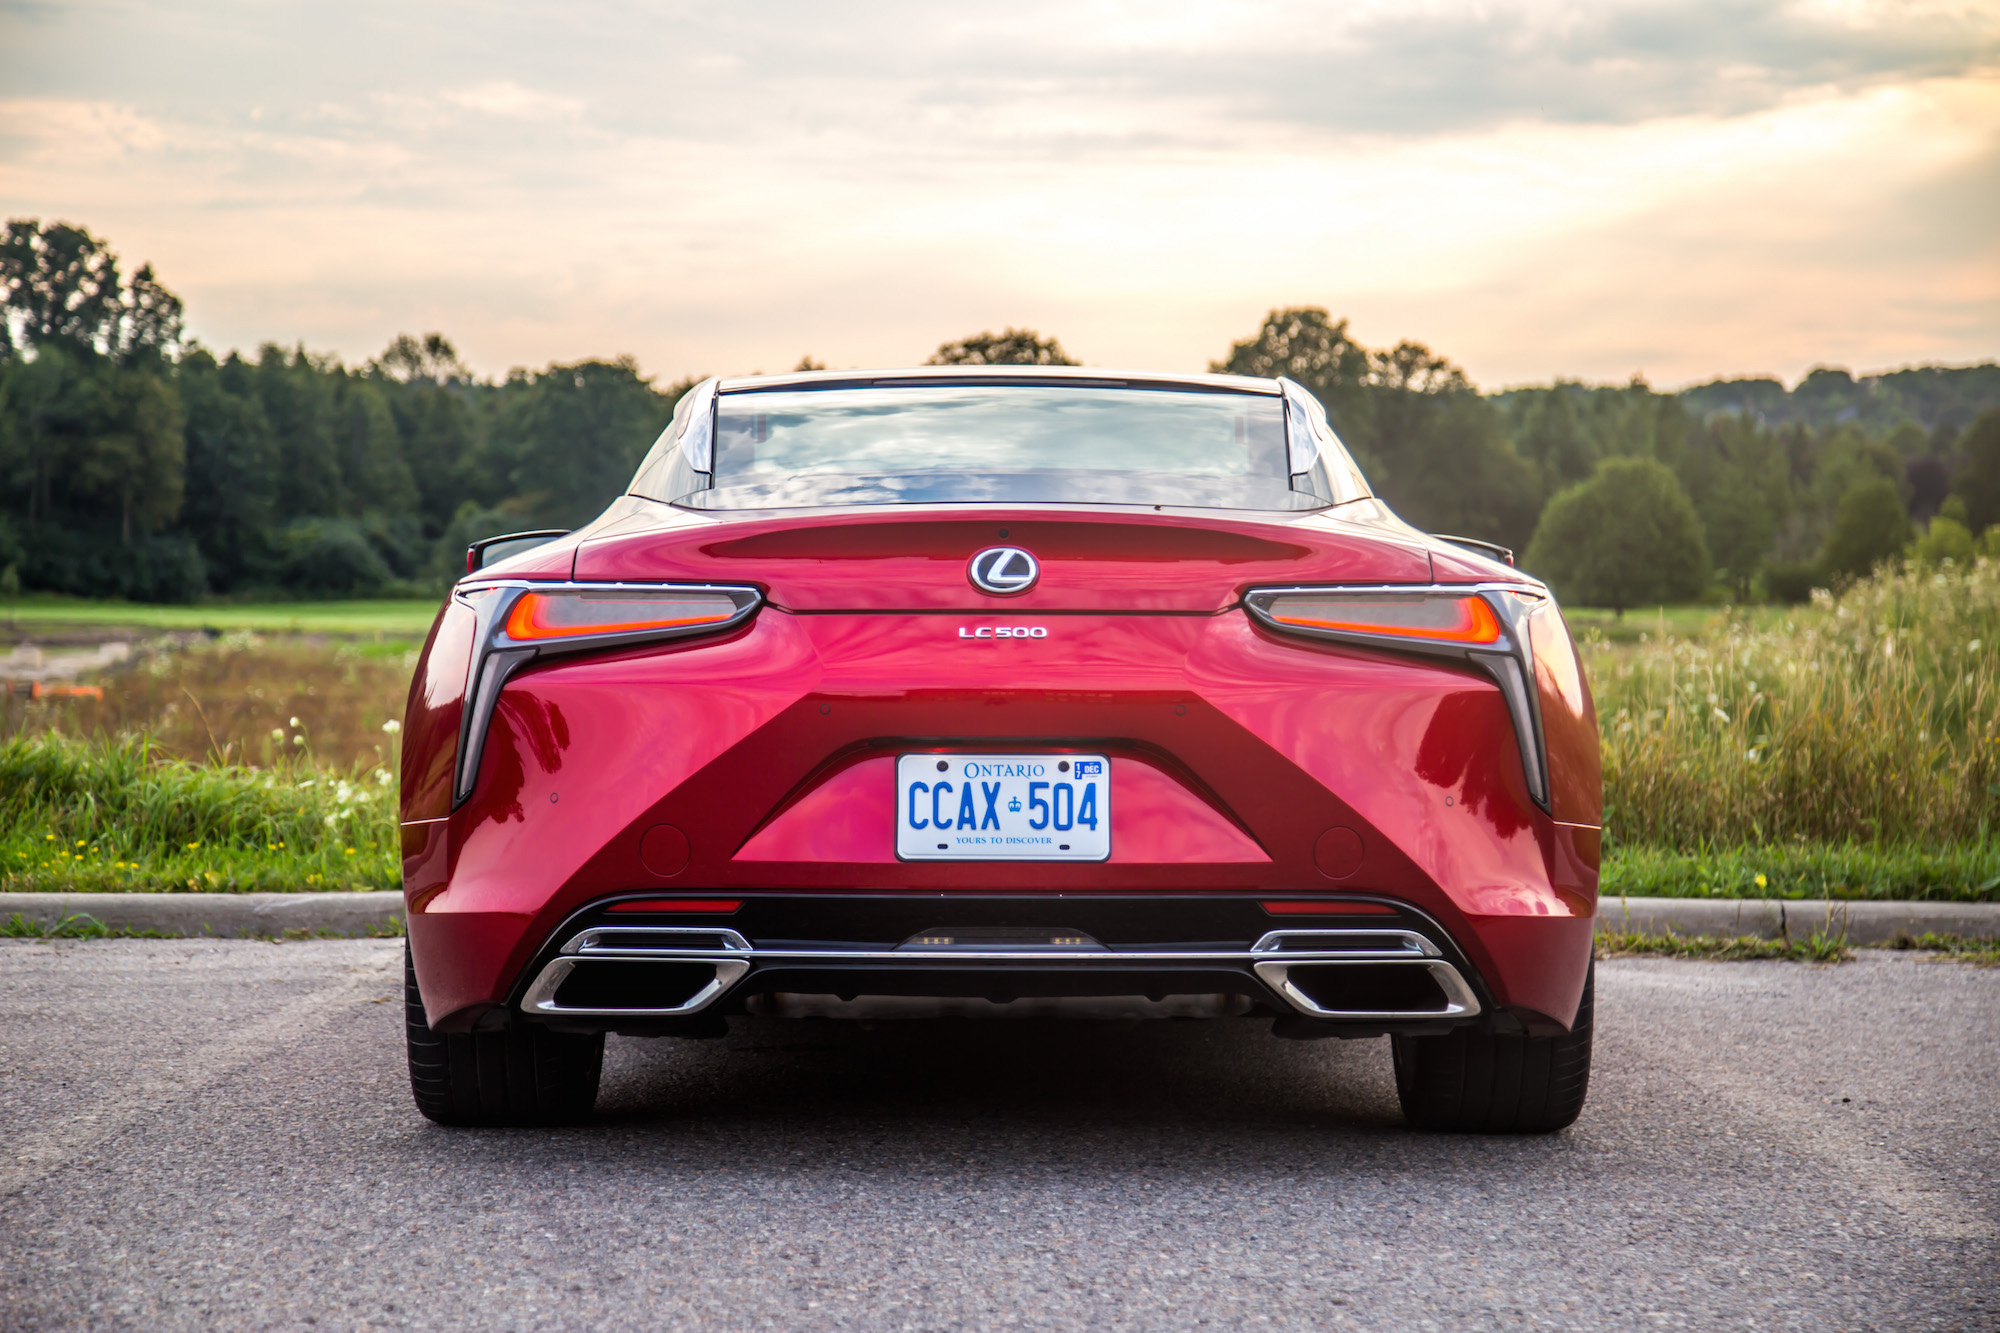 lc 500 lexus convertible. 2018 lexus lc 500 rear view exhausts lc convertible